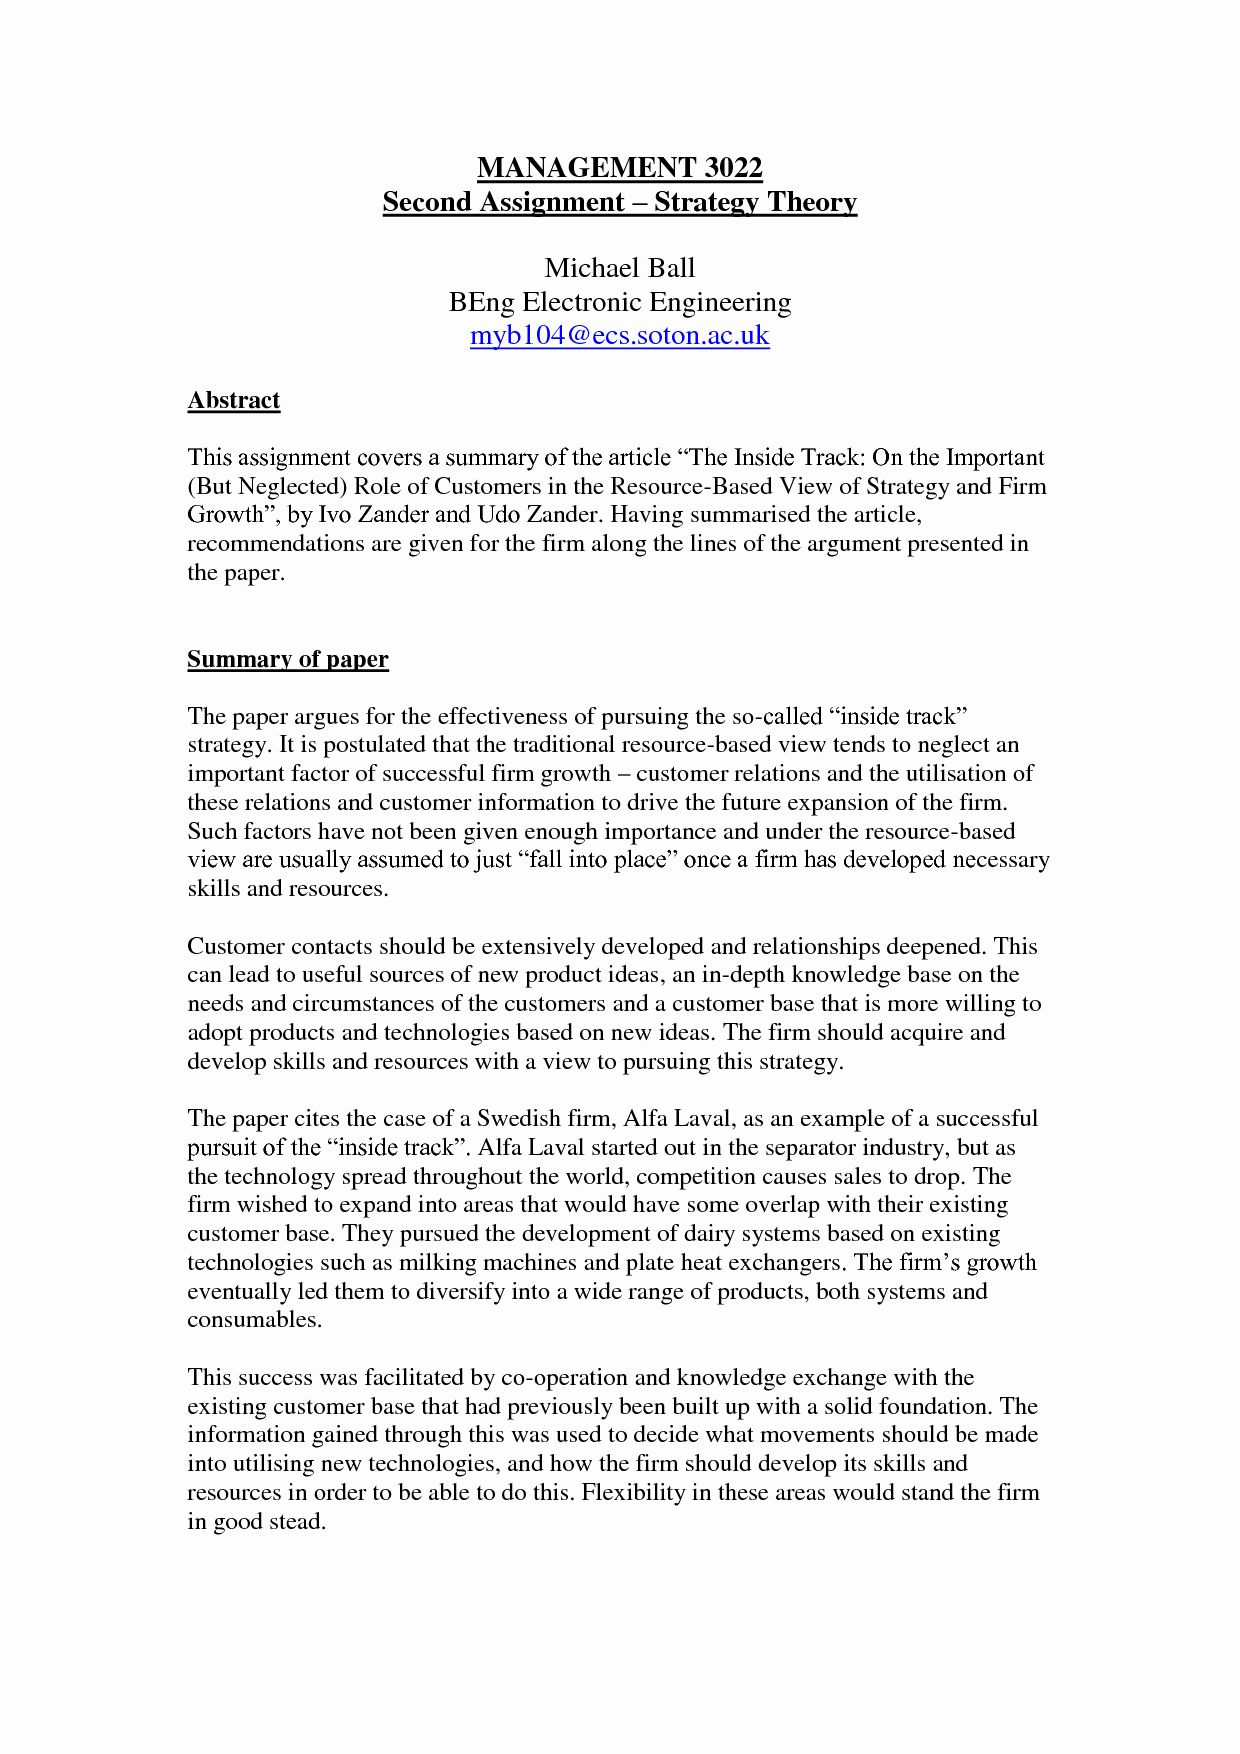 Pin By Leanne Wood On Project To Try Summary Writing Essay Example Letter Of Recommendation Sample Abstract